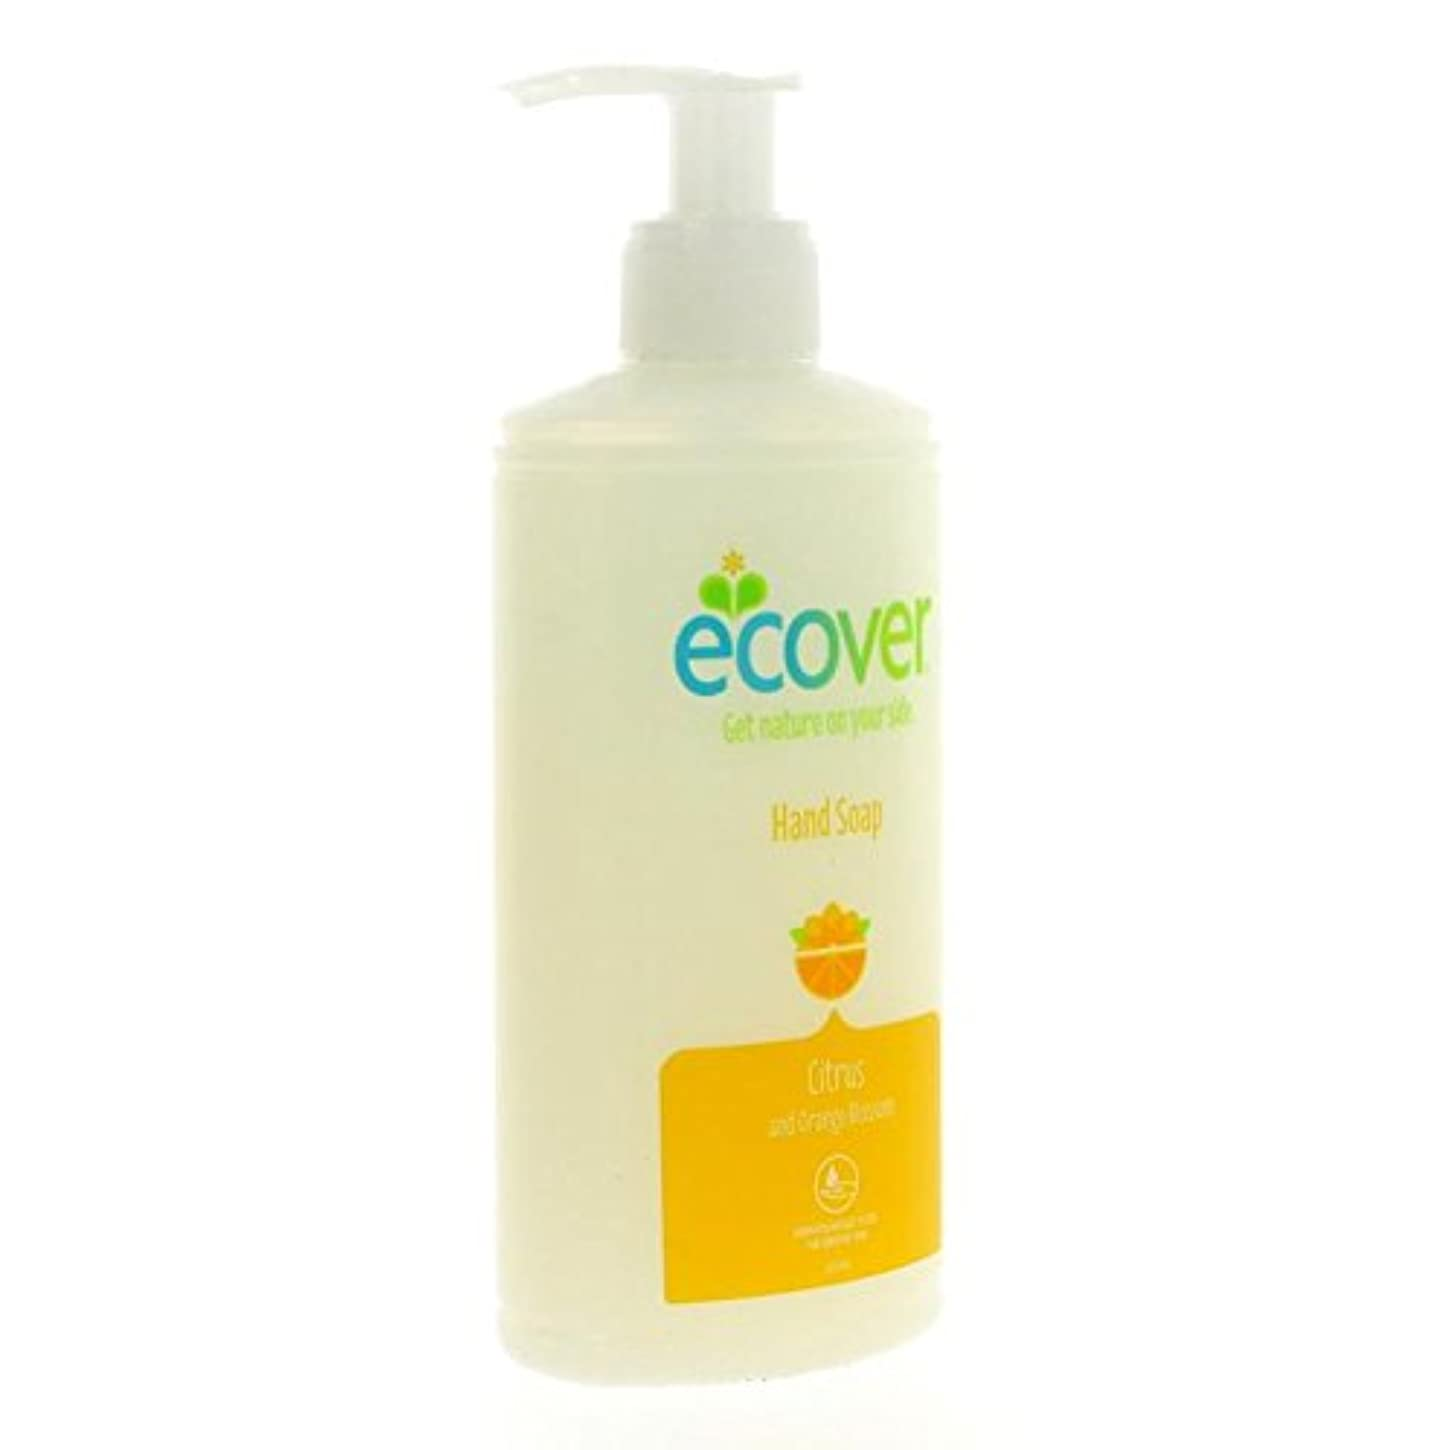 シャンプー市場ハムEcover - Hand Soap - Citrus and Orange Blossom - 250ml (Case of 6)